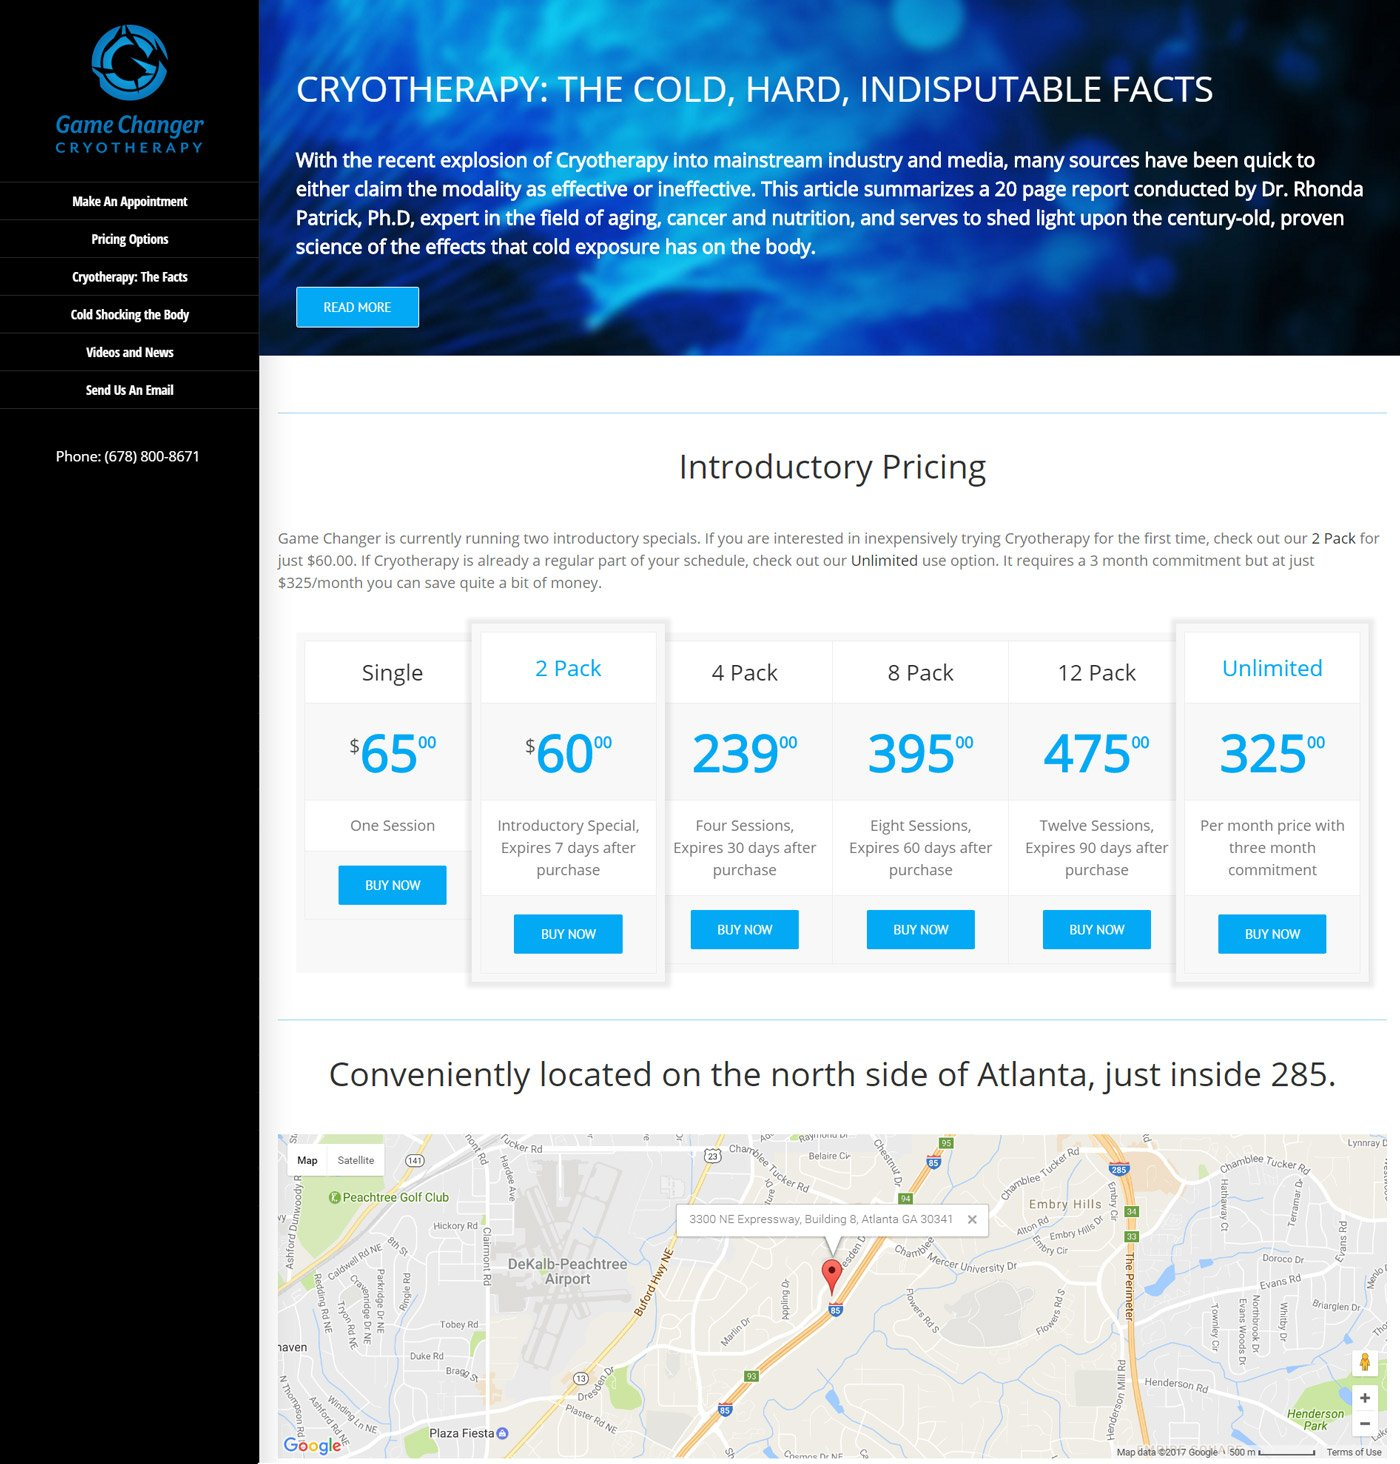 gamechanger cryotherapy website design atlanta